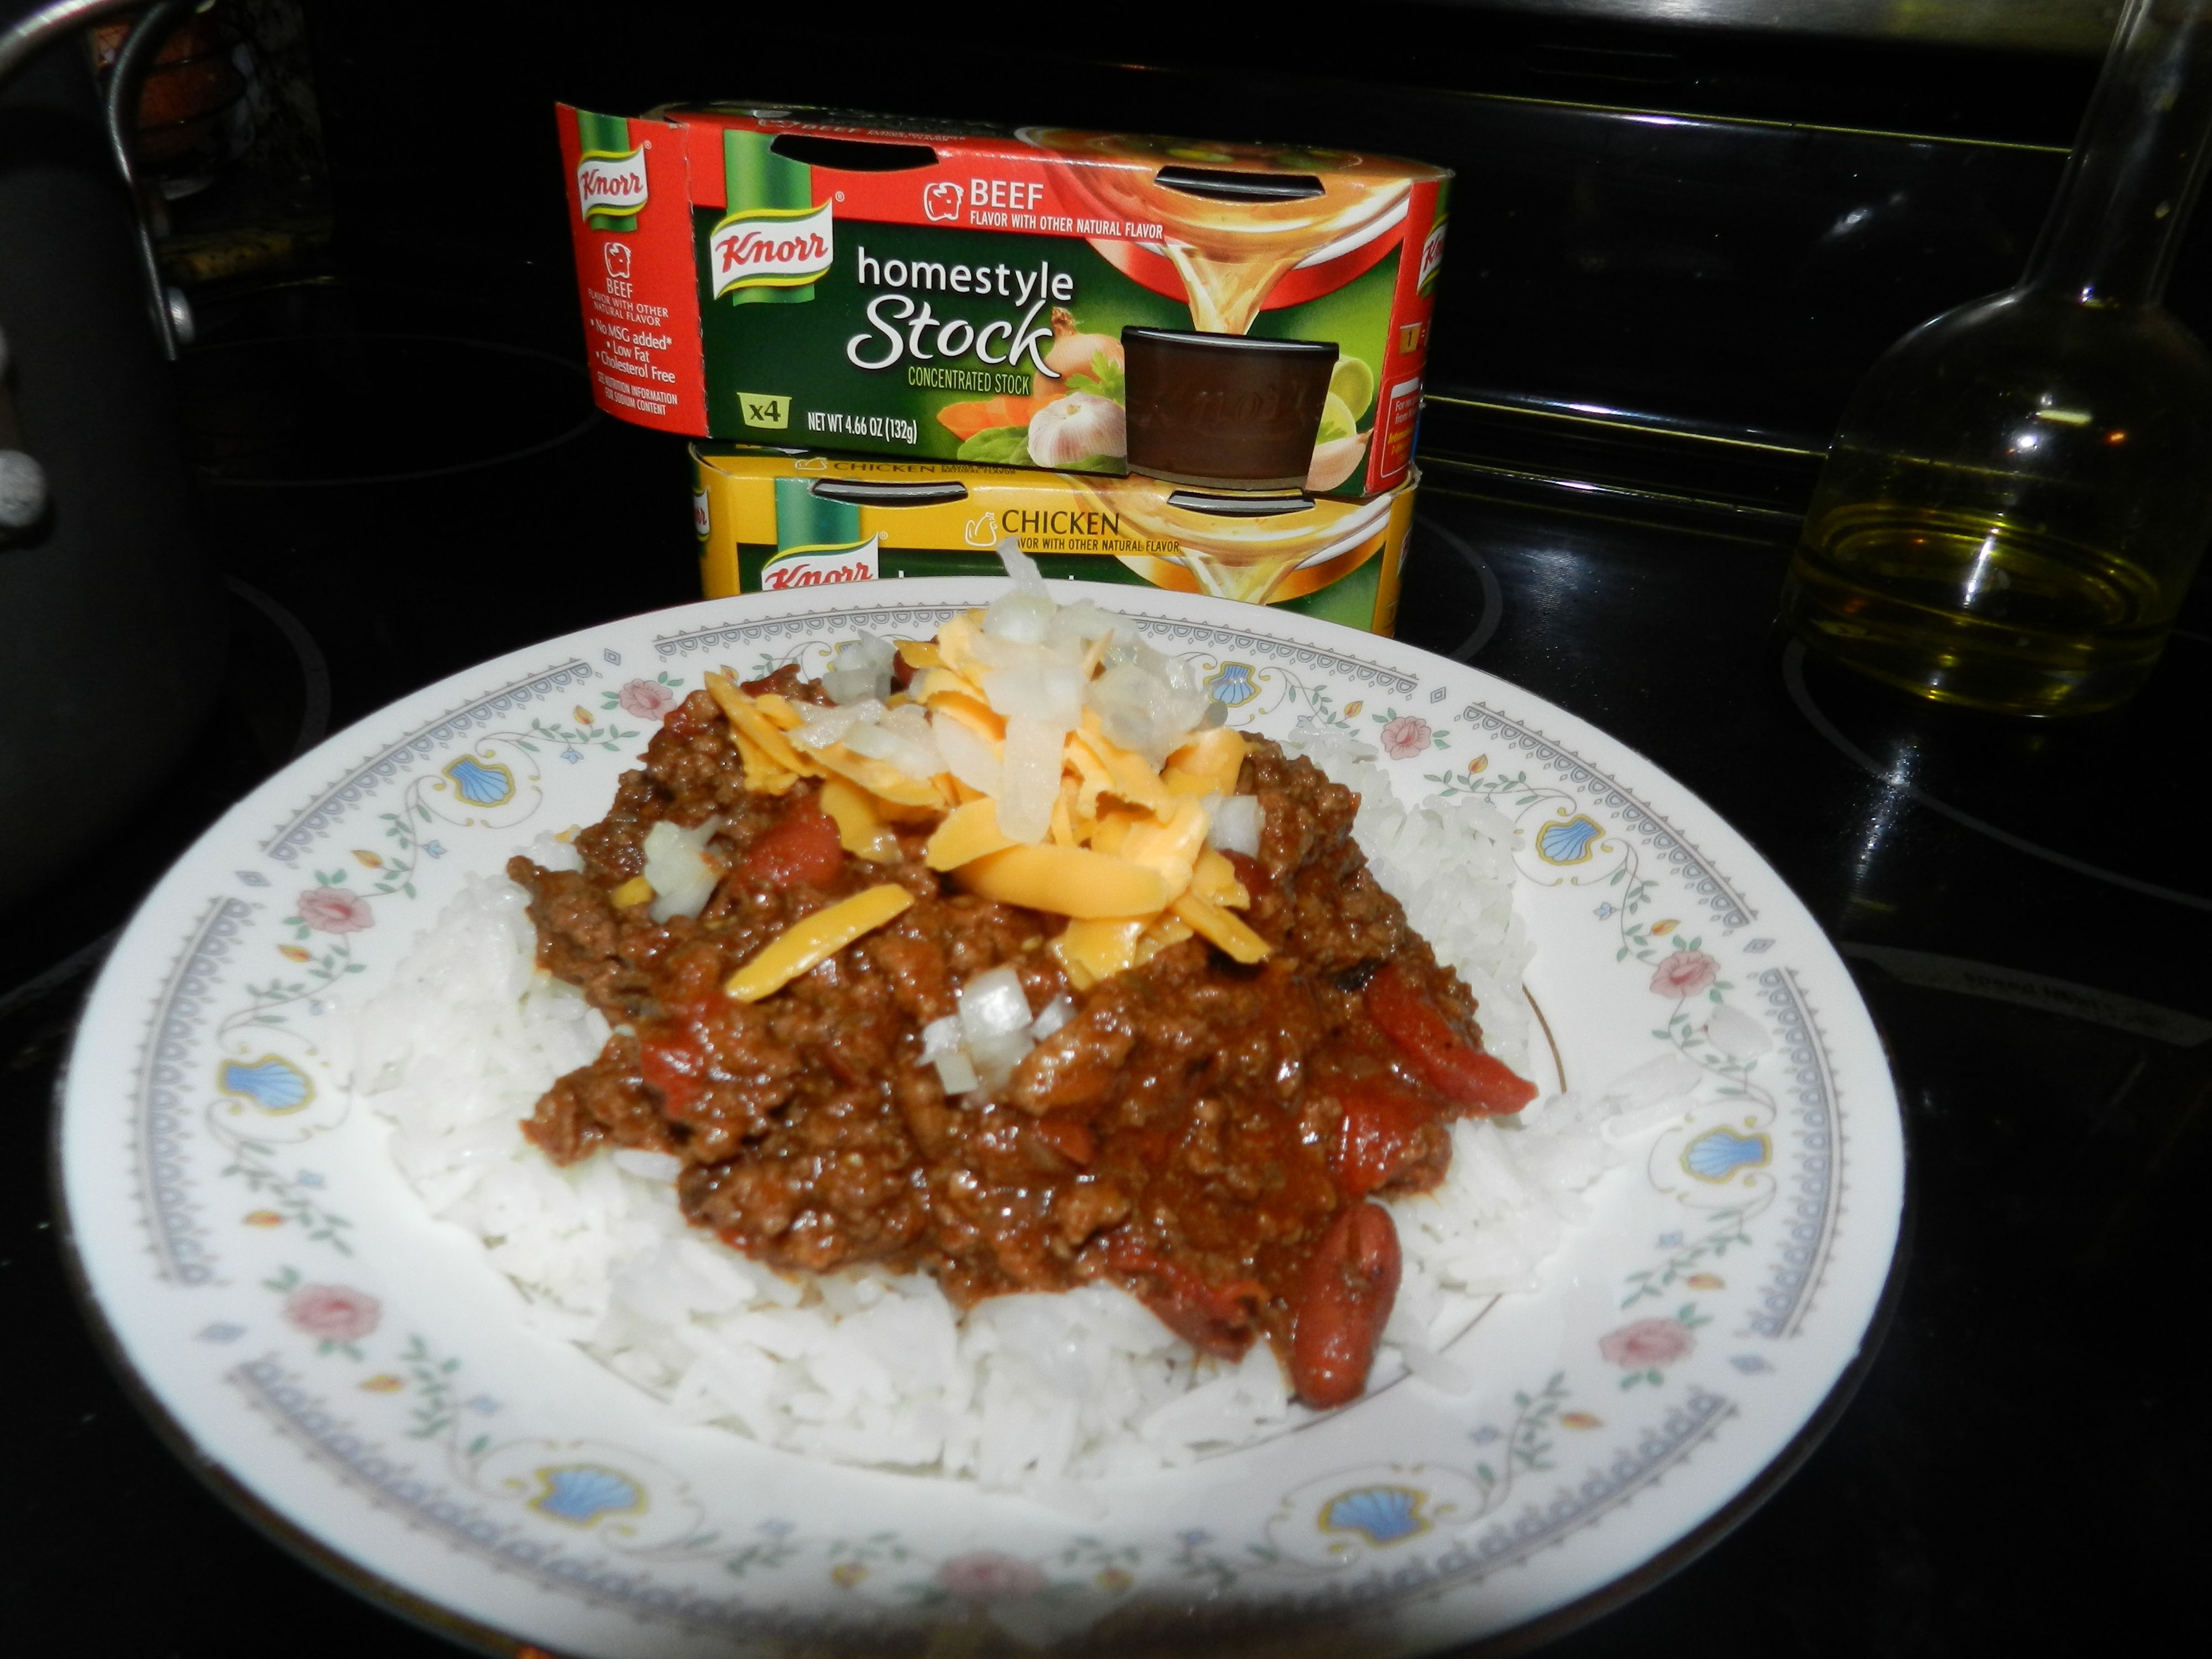 Chili with beef flavored knorr homestyle stock i liked the